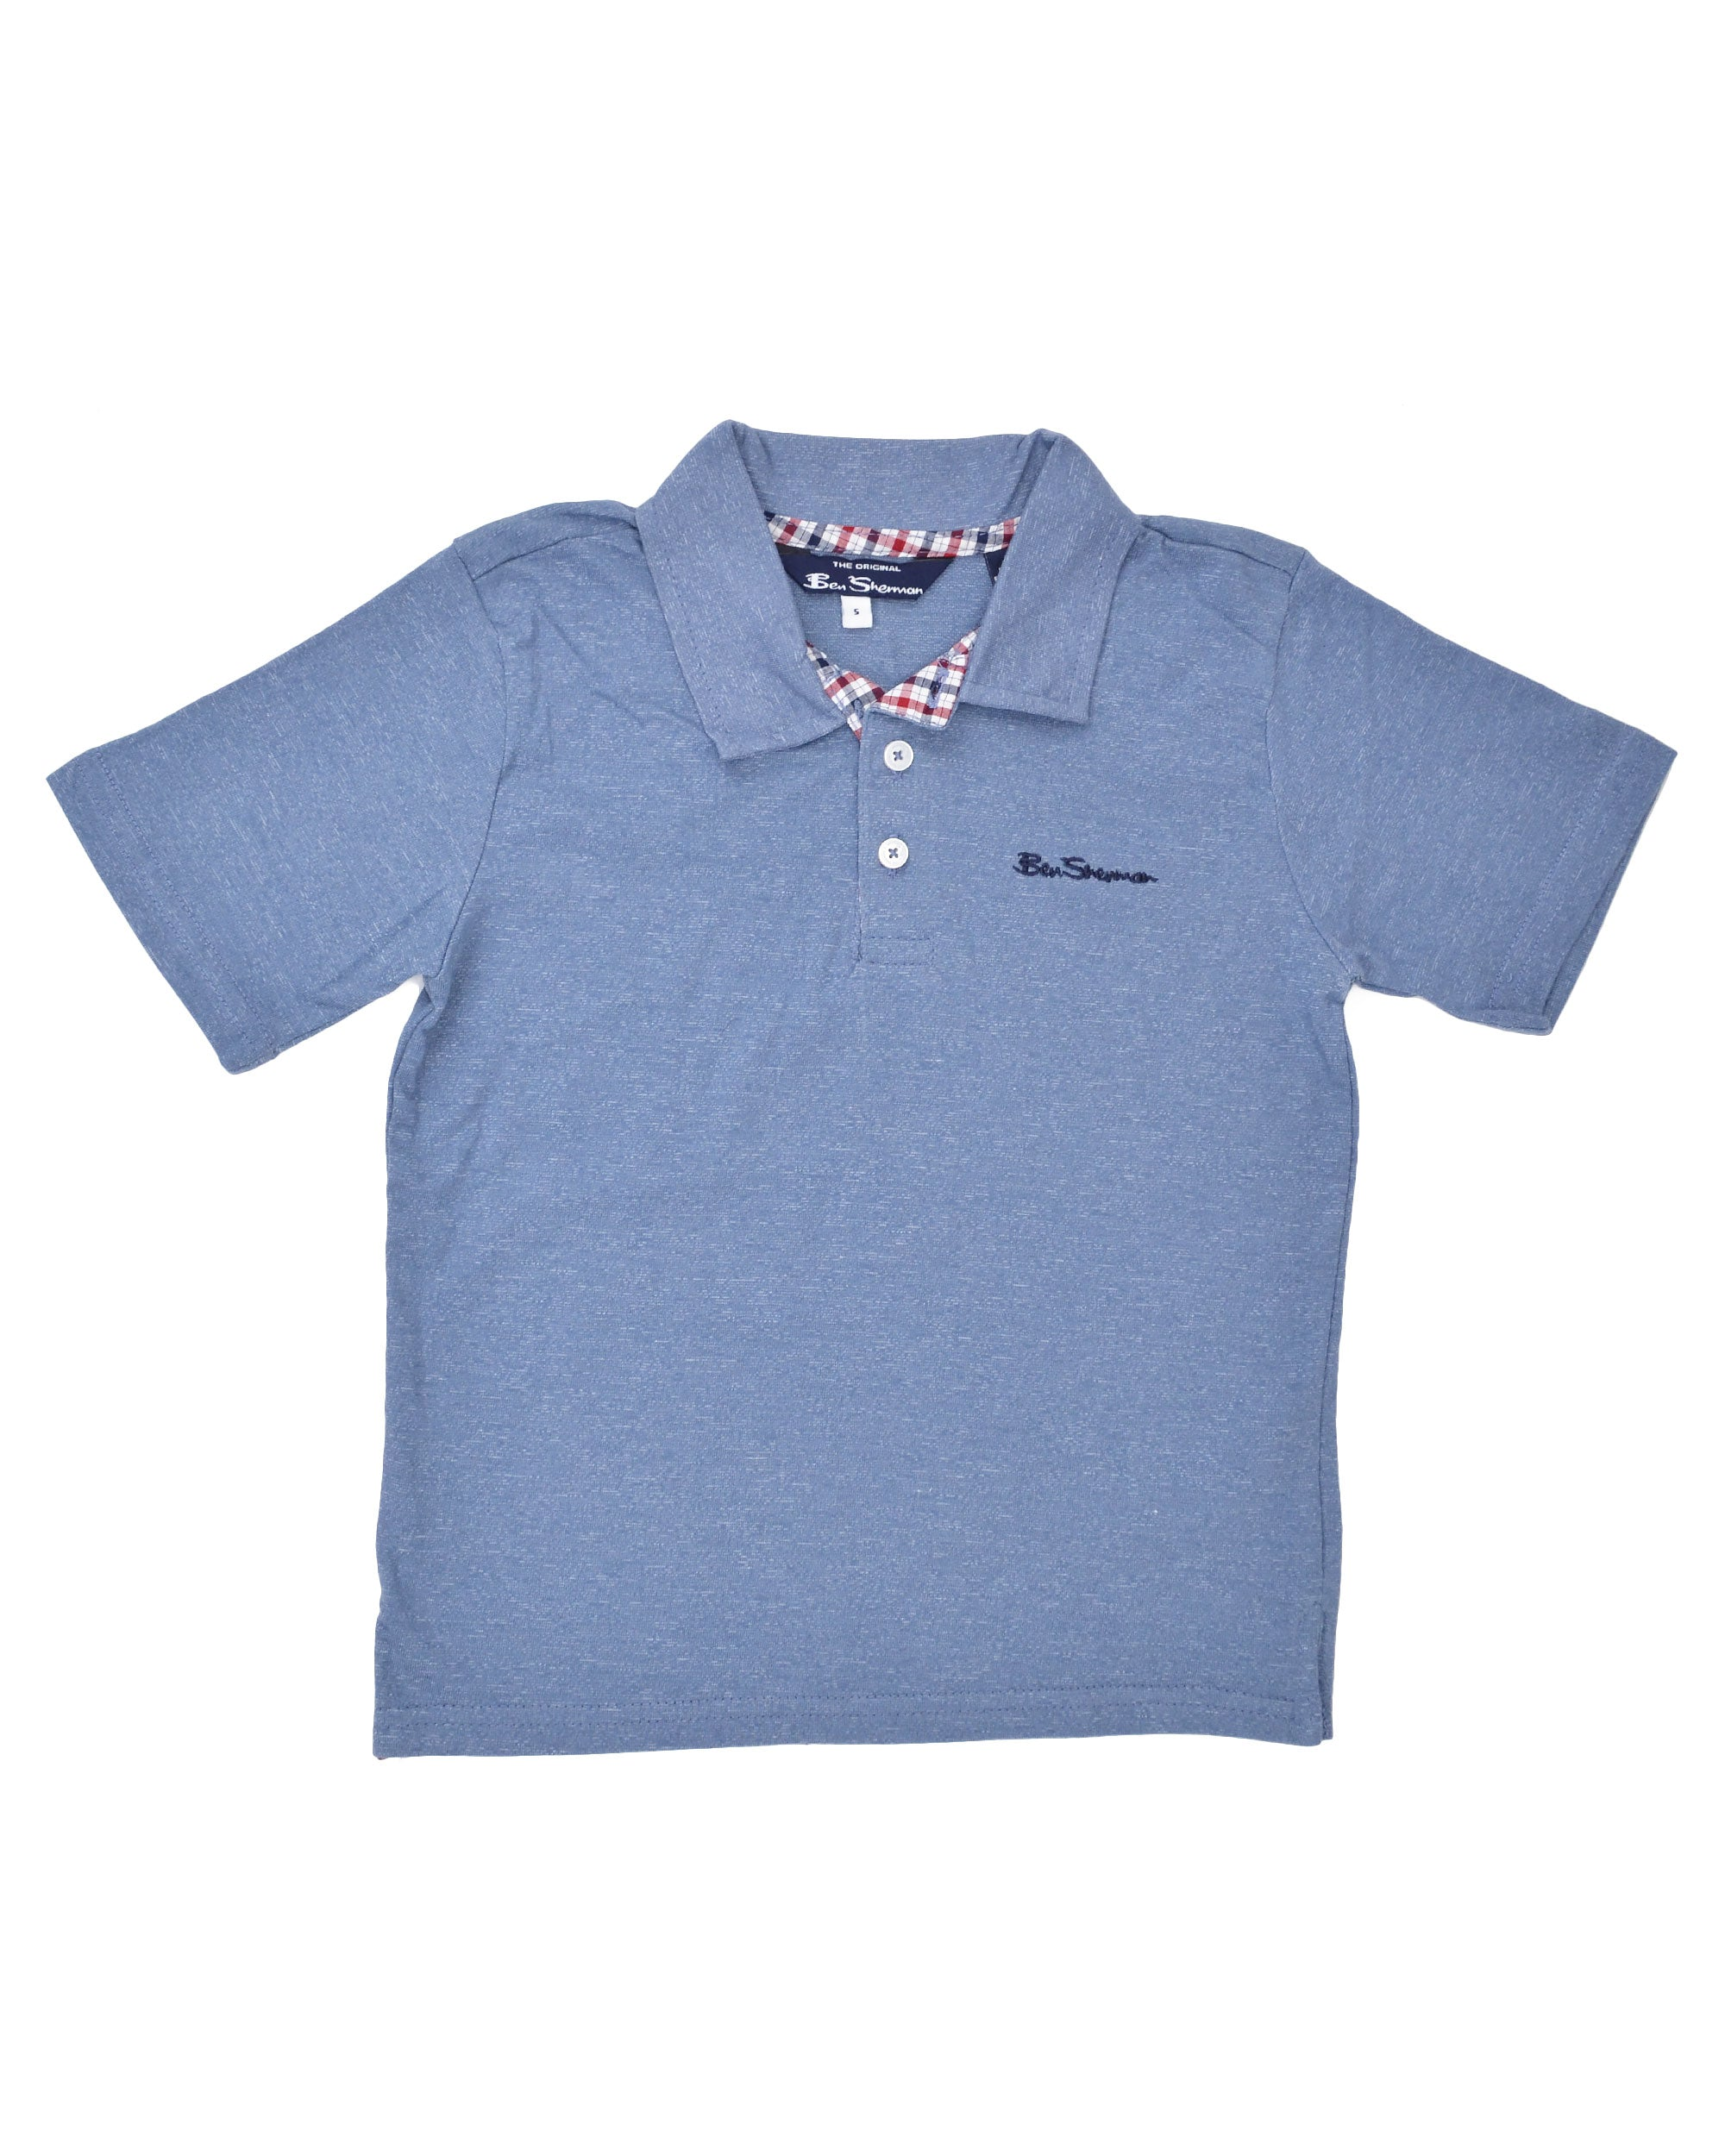 Boys' Short-Sleeve Polo Shirt - Blue (Sizes 4-7)